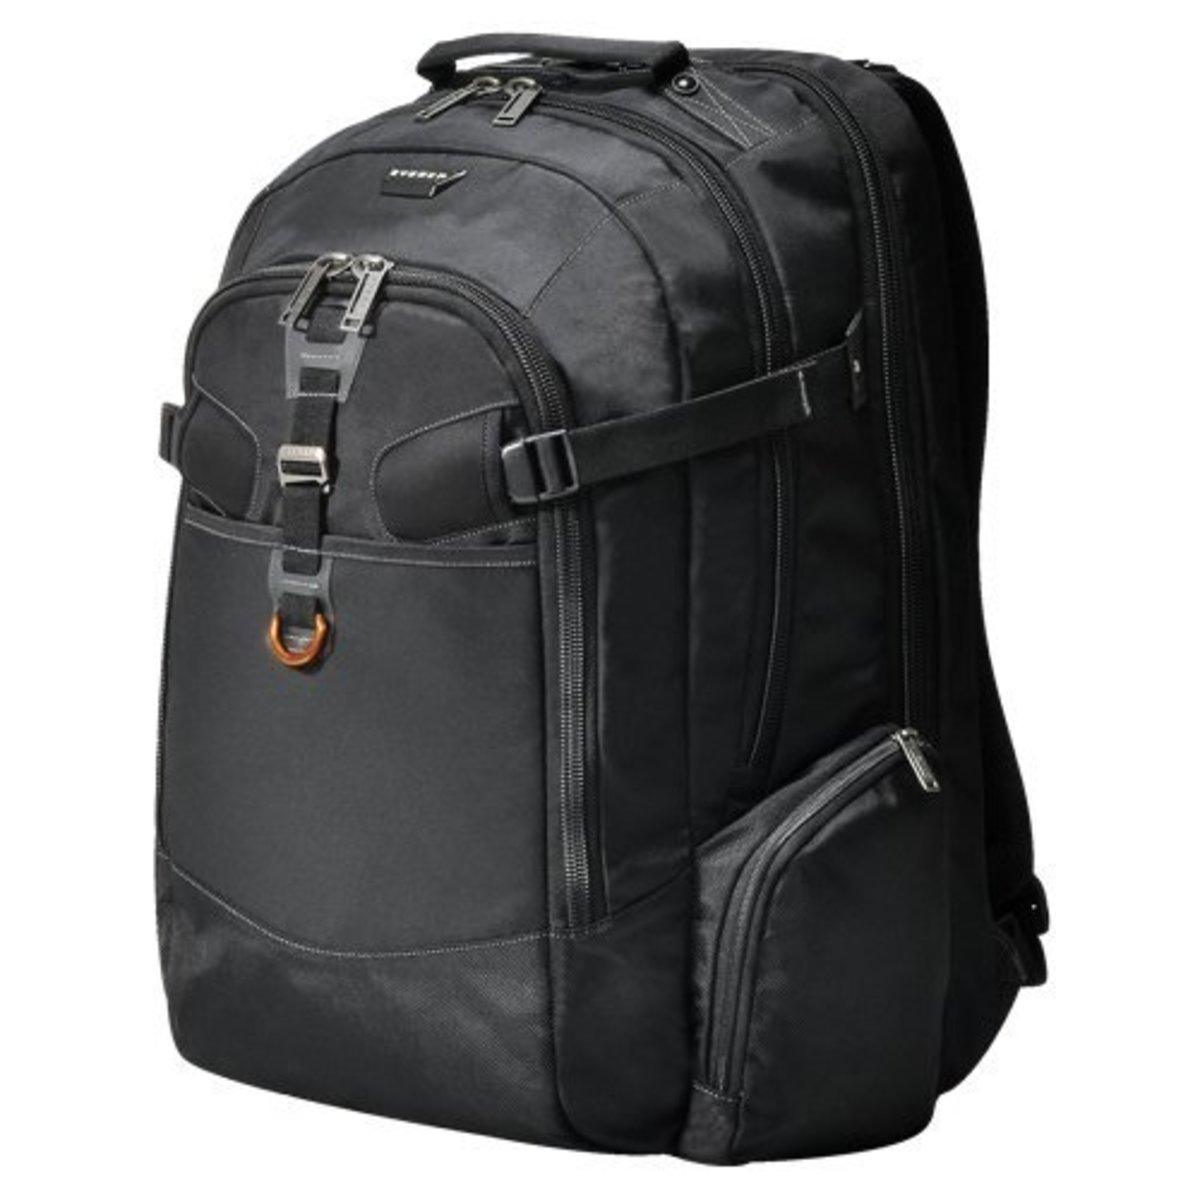 Best 18-inch Laptop Backpack / 18.4-inch Laptop Backpacks | 2015 ...